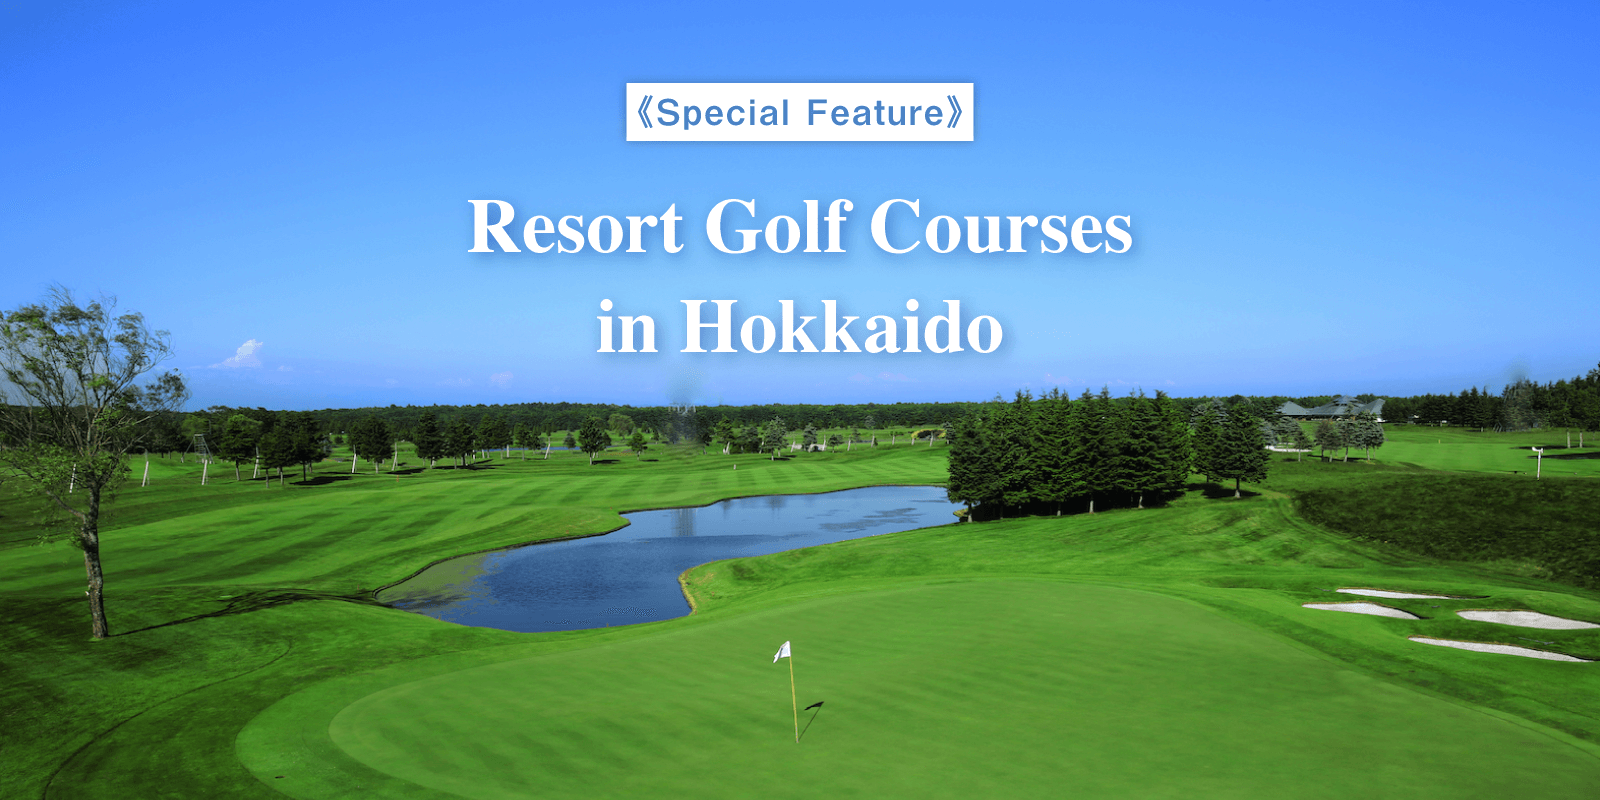 《Special Feature》Resort Golf Courses in Hokkaido